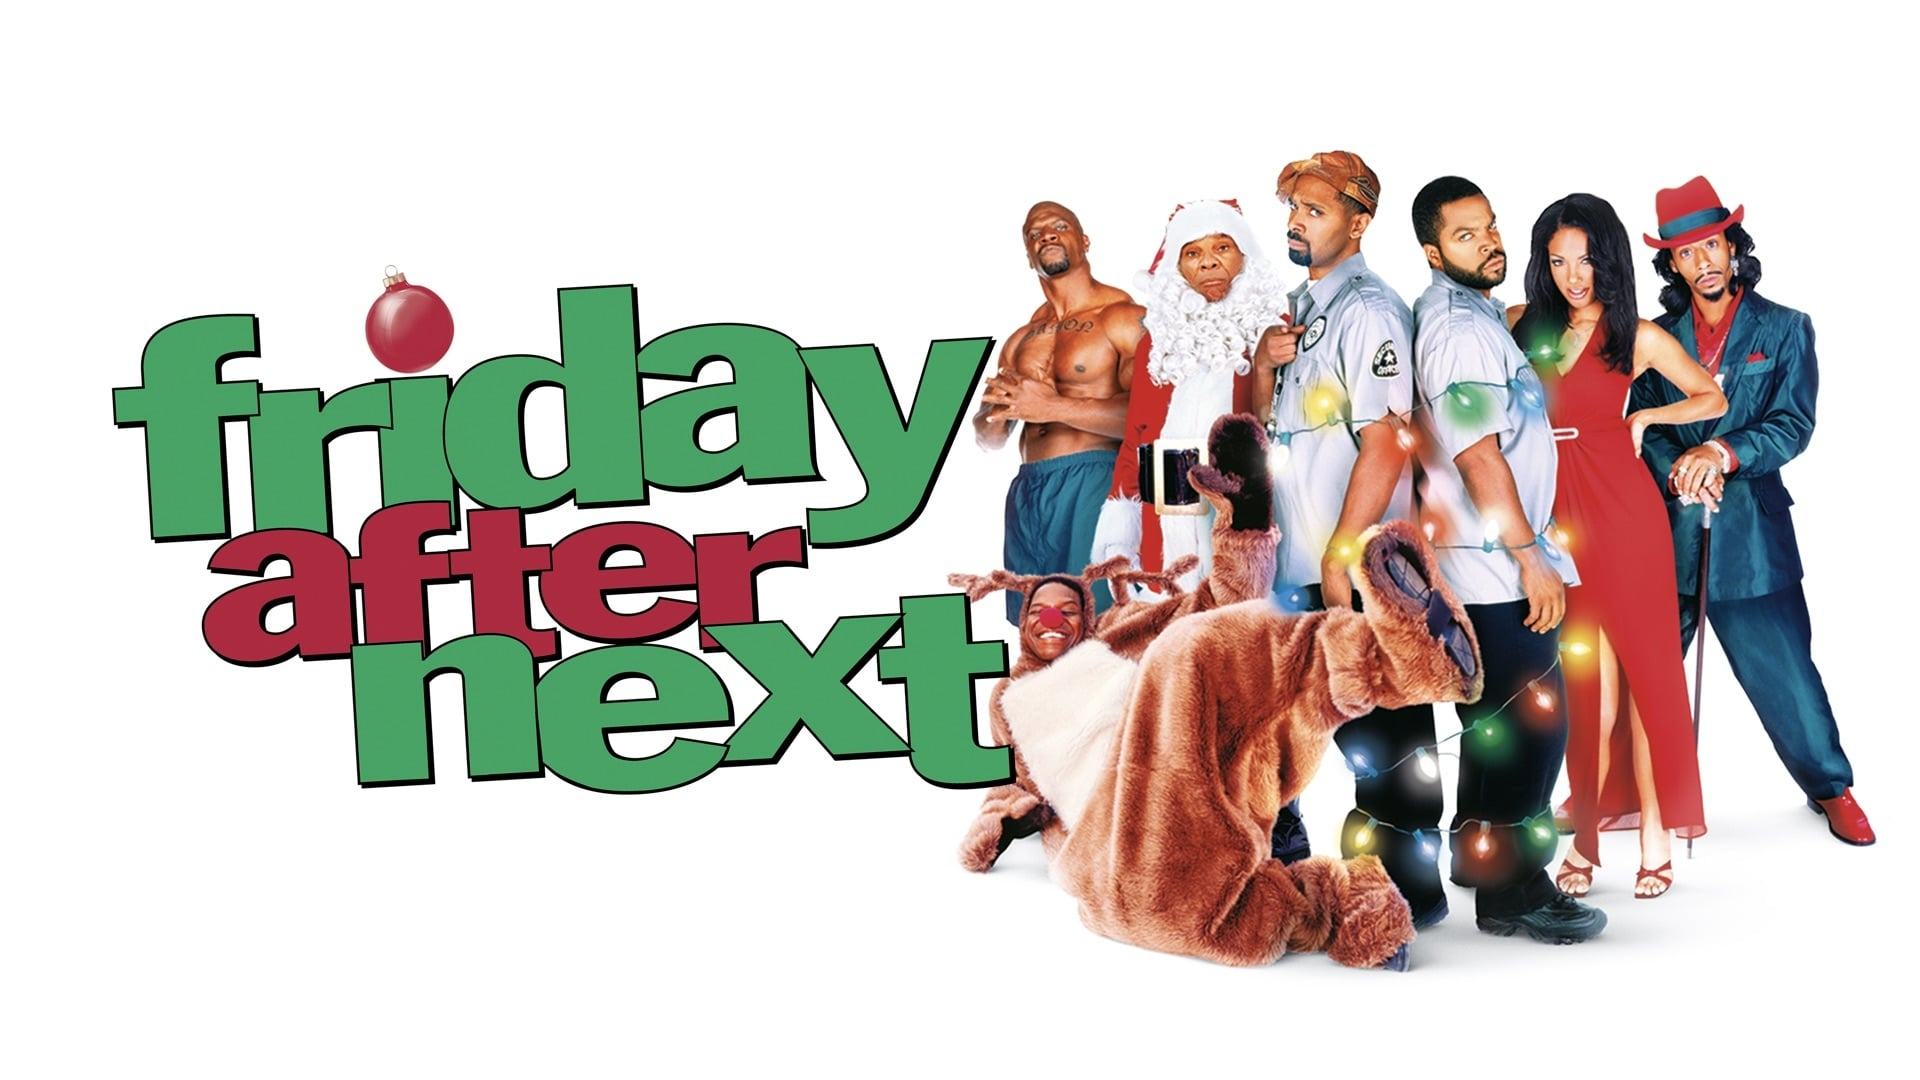 Regarder Friday After Next en streaming gratuit